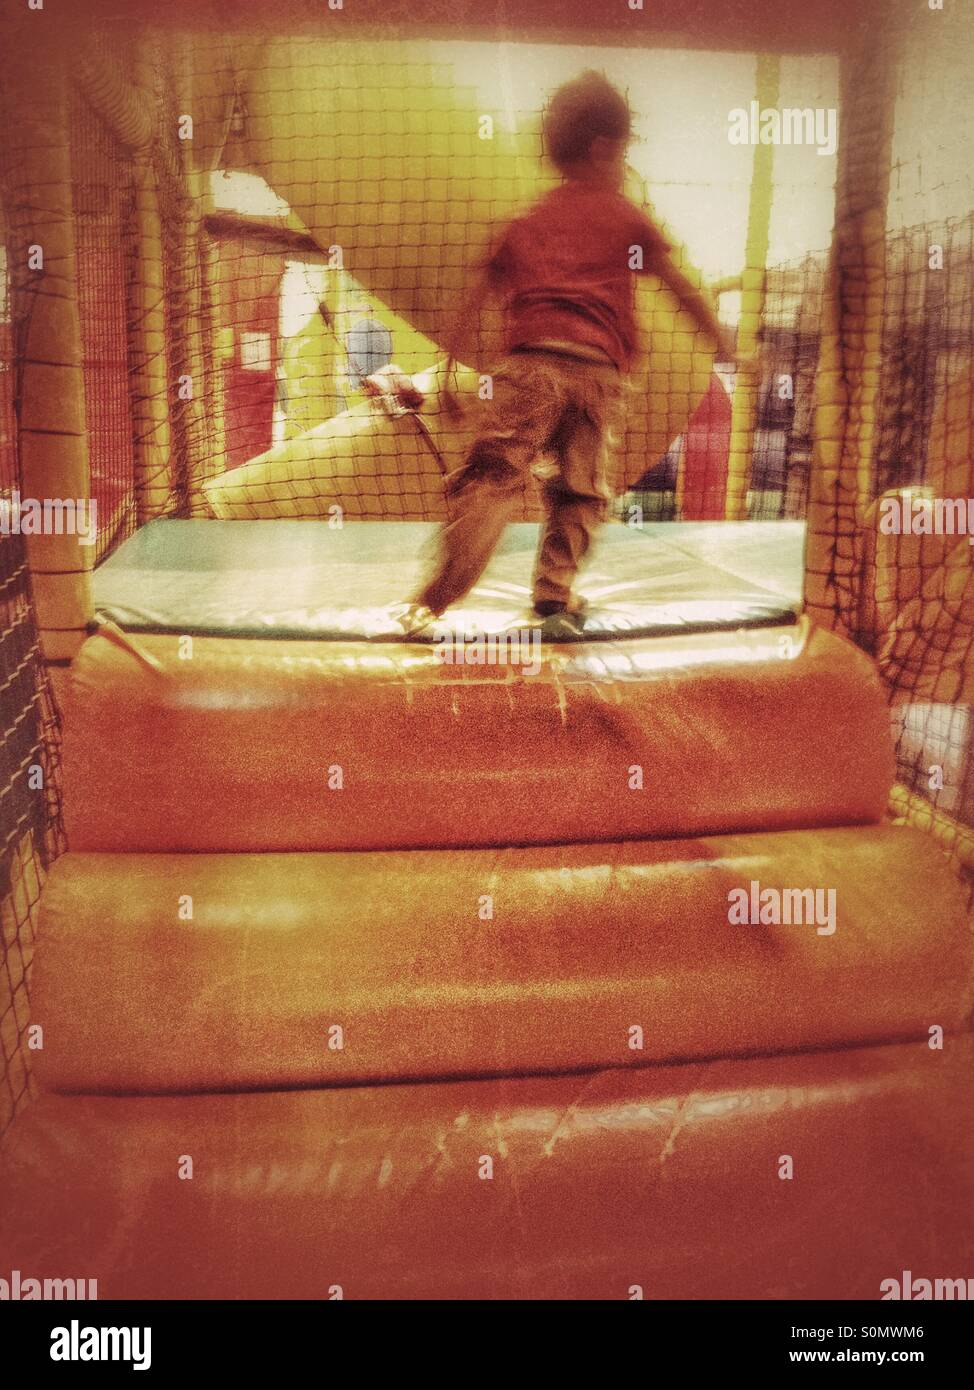 Young boy having fun at a soft play place. - Stock Image